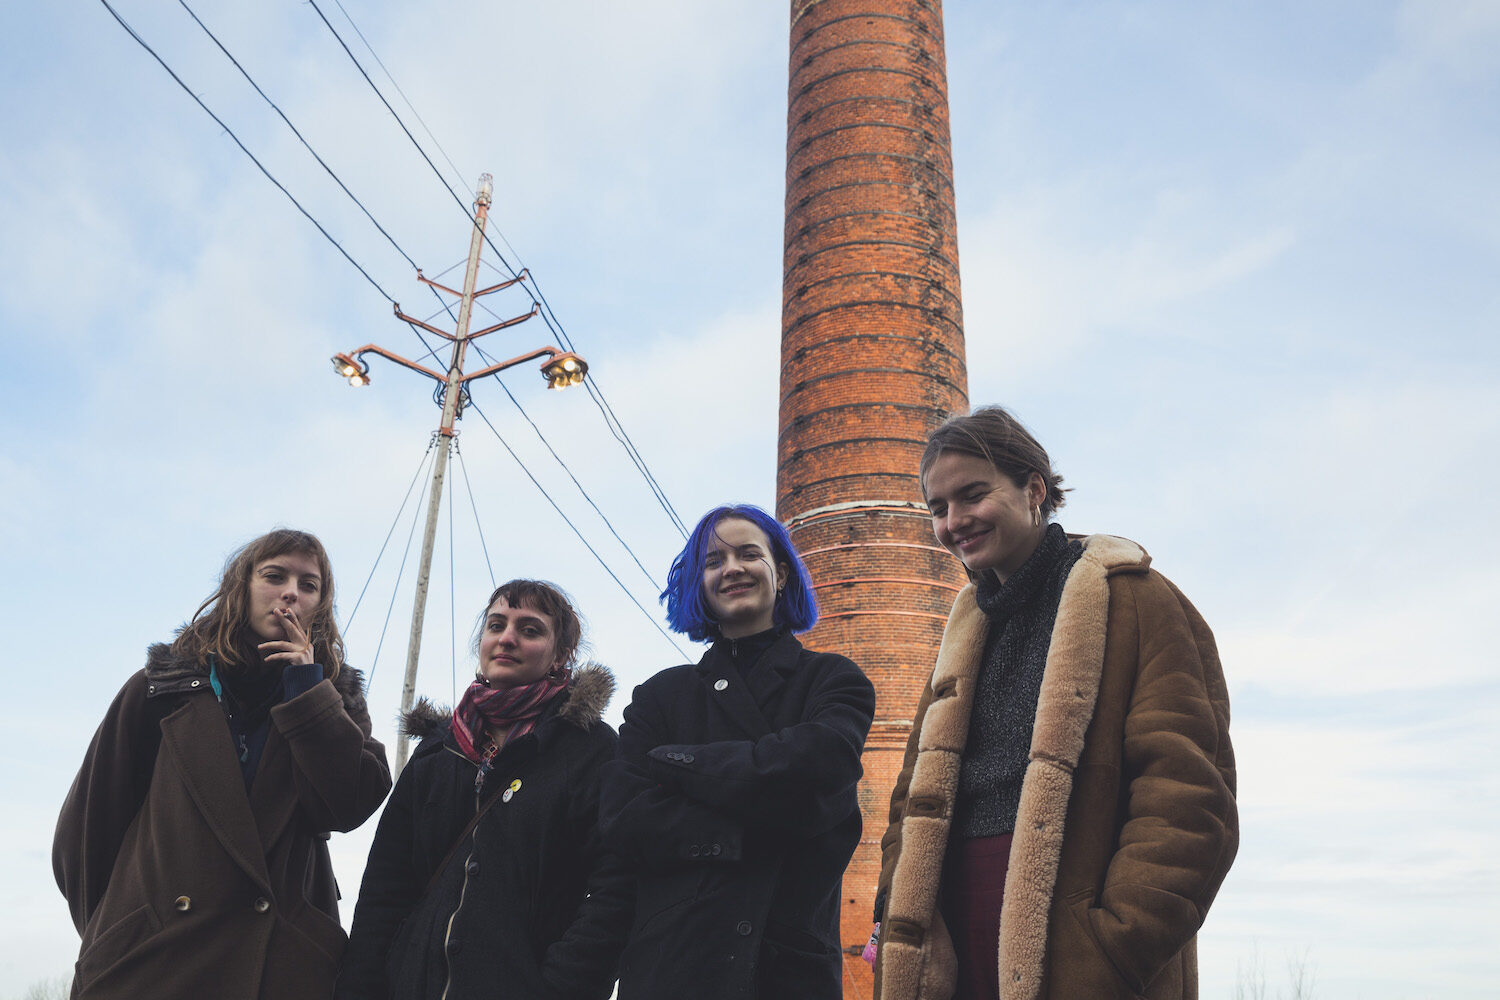 Goat Girl spread their wings in new 'Crow Cries' video